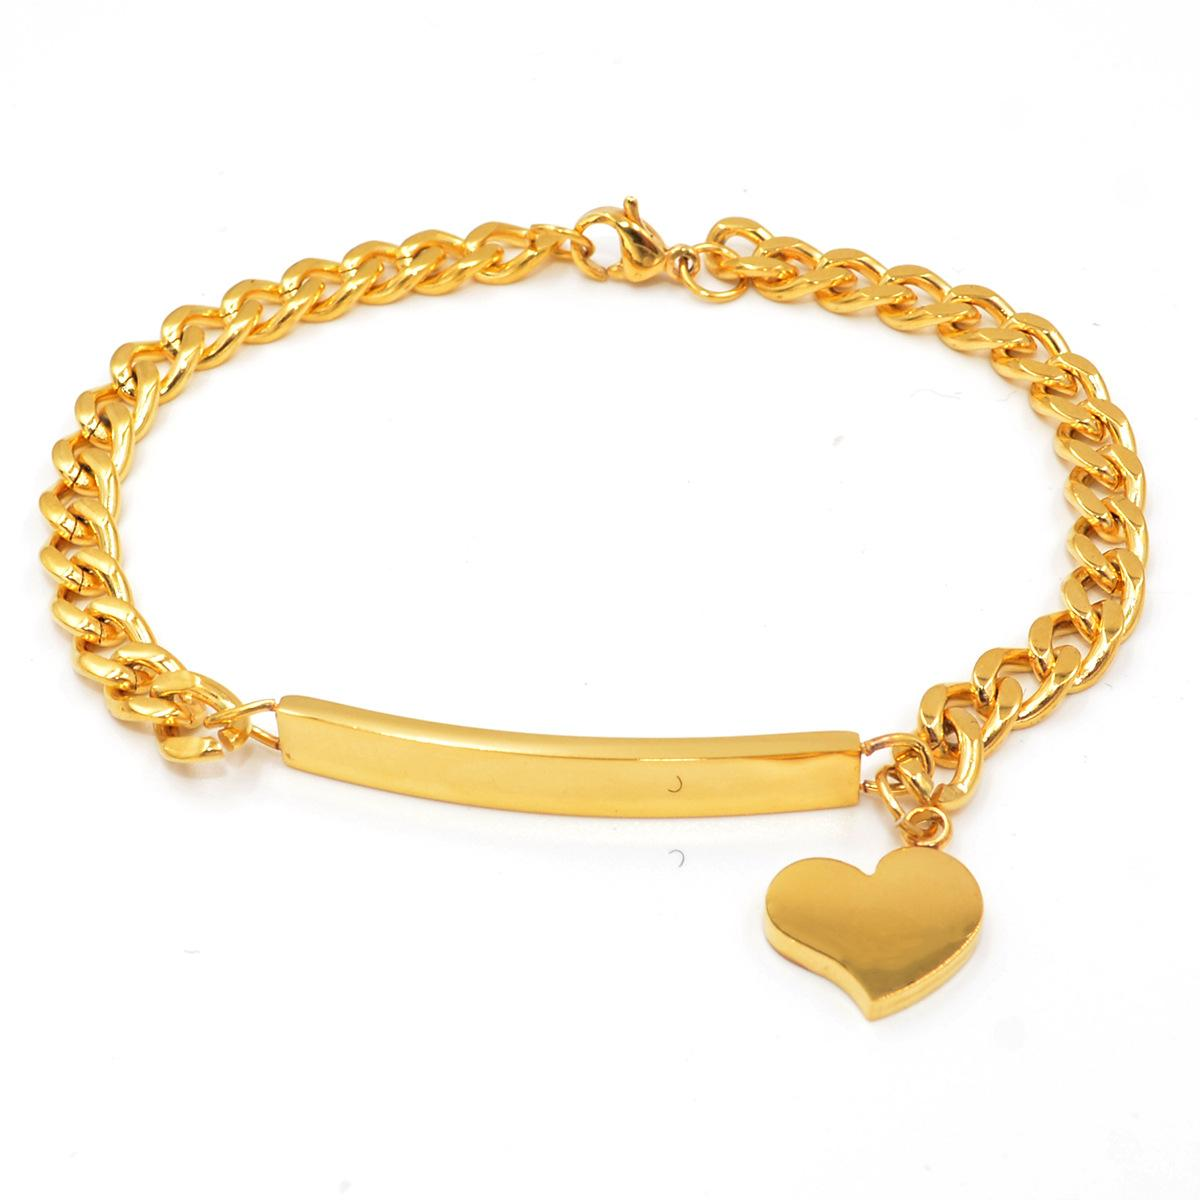 design for c womens tone bracelets women jewellery qgbr gold two italian link in bracelet